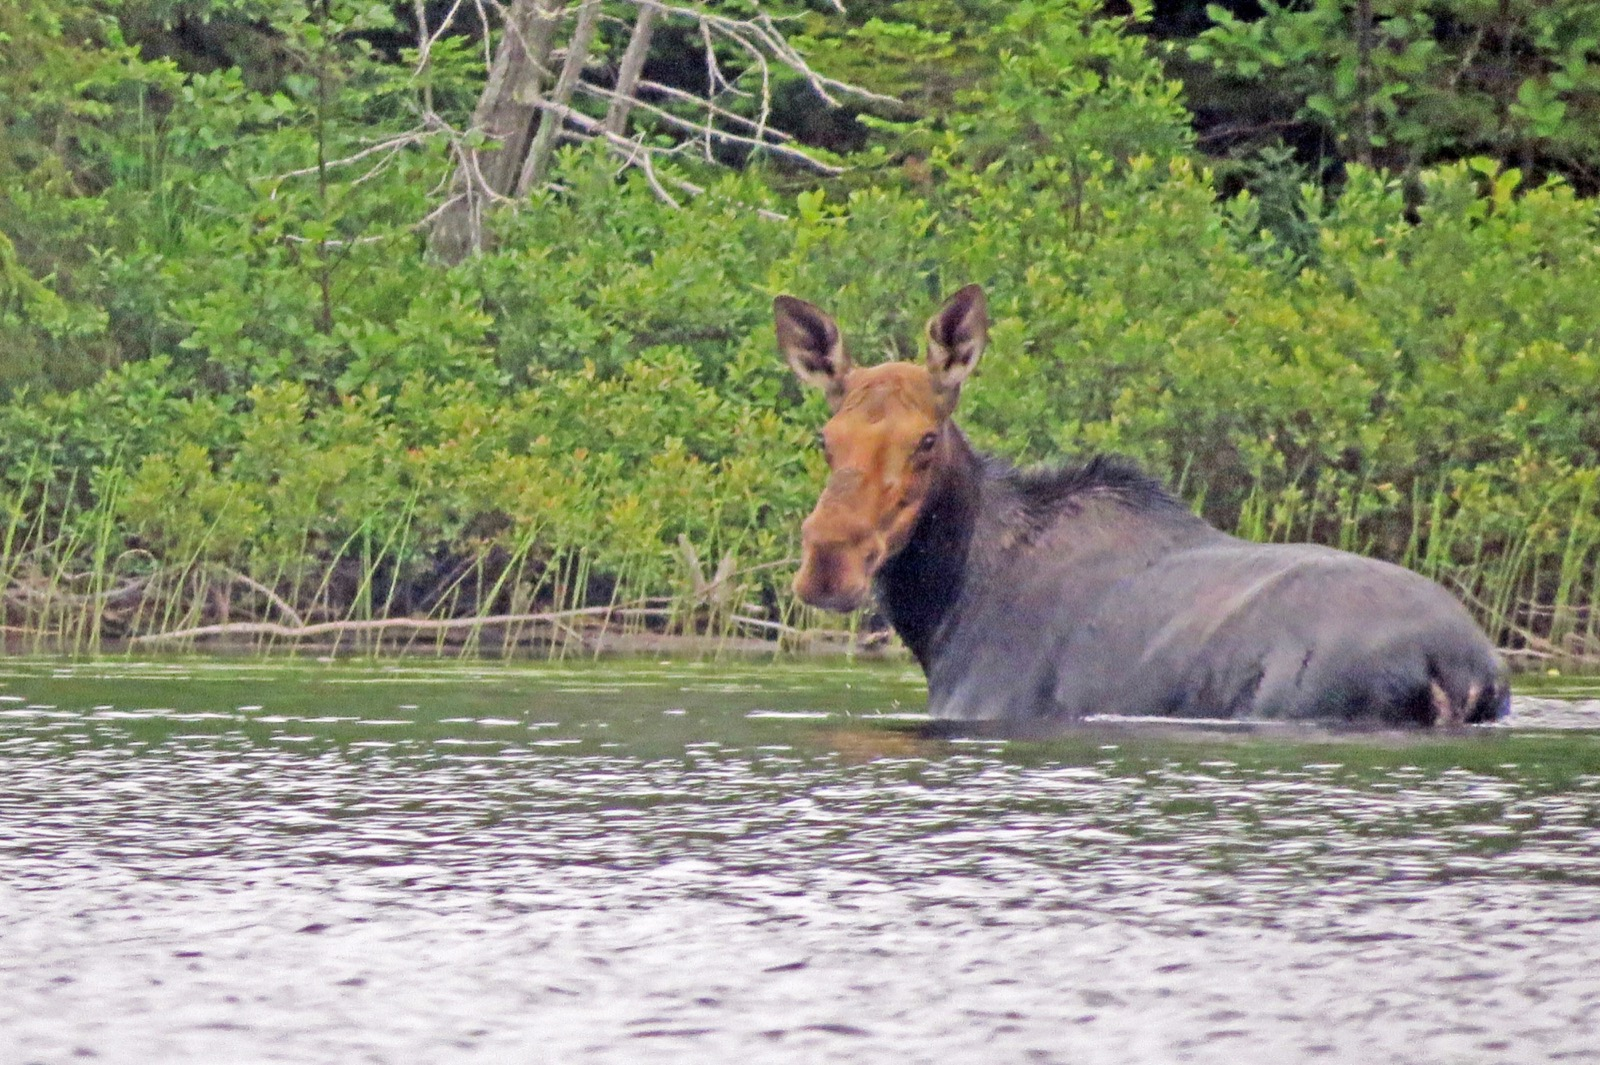 a close up photo of a moose in the water eating vegetation